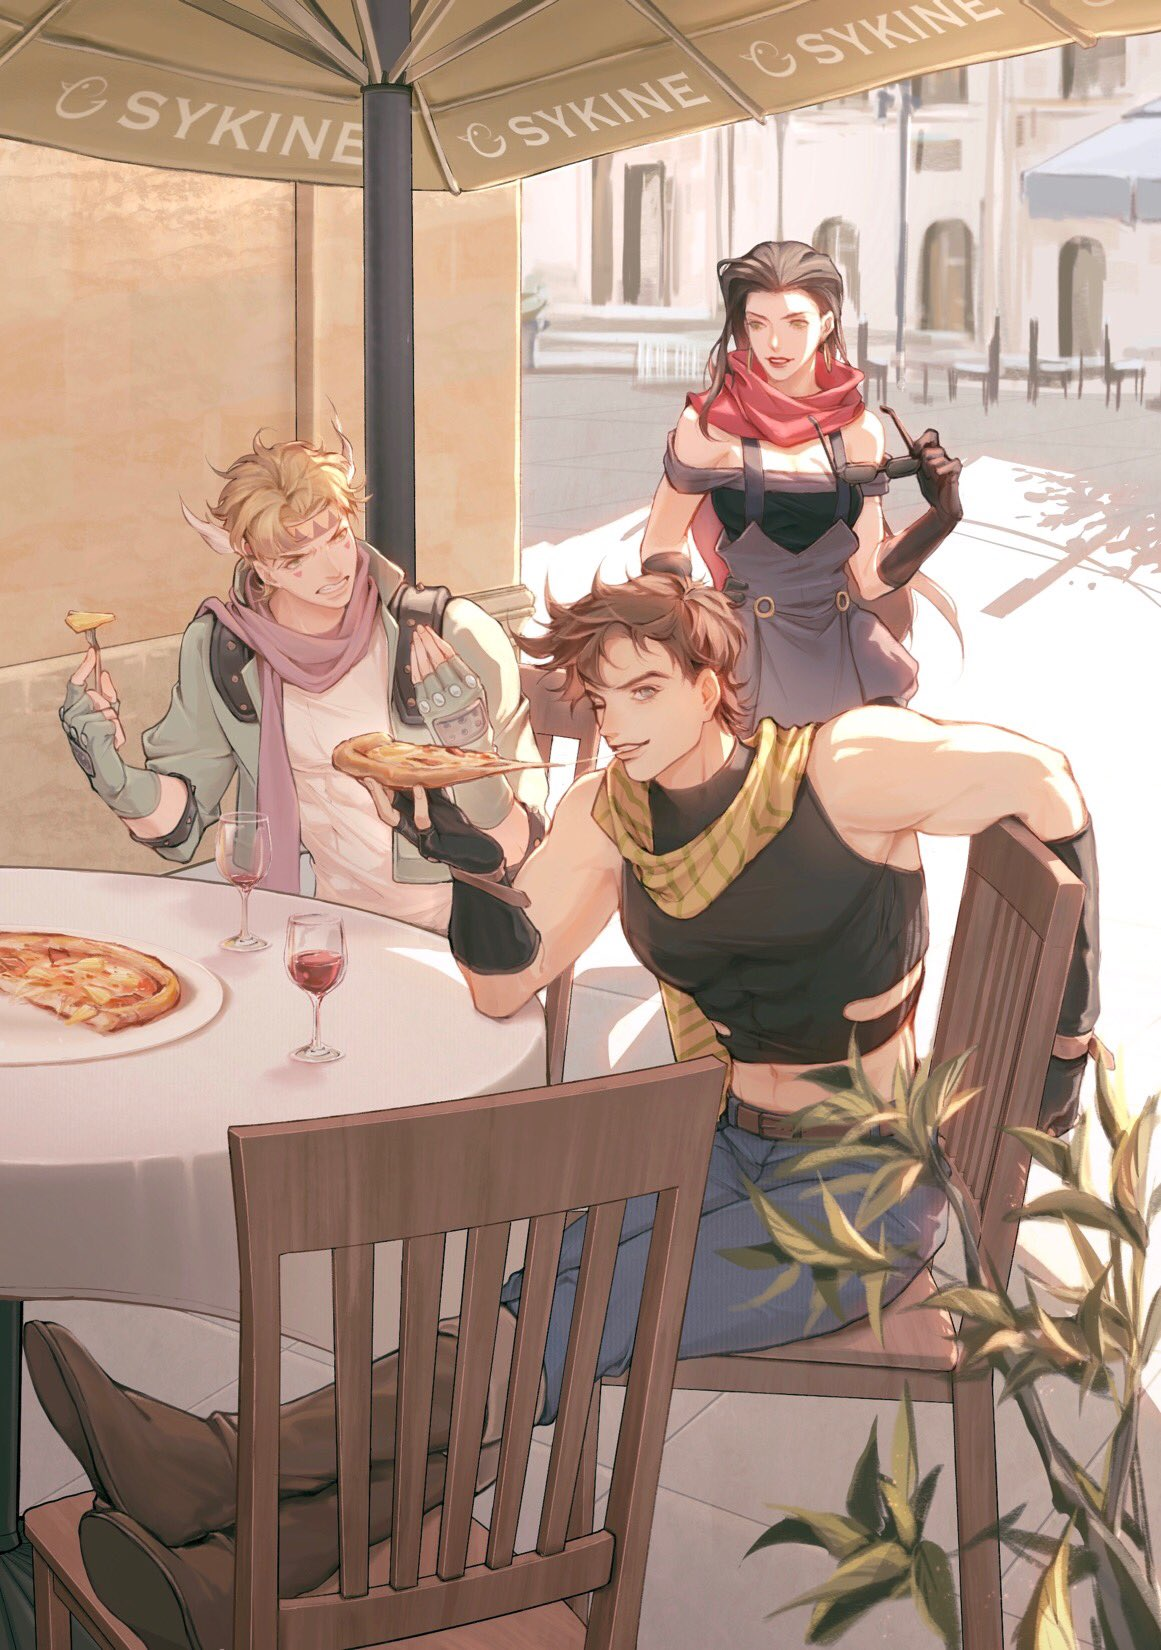 1girl 2boys abs alcohol artist_name bare_shoulders battle_tendency belt birthday black_gloves blonde_hair blue_gloves blue_jacket boots brown_belt brown_hair caesar_anthonio_zeppeli chair chanasykine cheese_trail clenched_teeth clothing_cutout commentary crop_top crossed_ankles cup denim dress drink drinking_glass earrings eating elbow_gloves elbow_rest english_commentary eyewear_removed facial_mark feathers fingerless_gloves food fork gloves grey_eyes grimace hair_feathers hand_on_hip hands_up hawaiian_pizza highres holding holding_eyewear holding_food holding_pizza jacket jeans jewelry jojo_no_kimyou_na_bouken joseph_joestar_(young) knee_boots lipstick lisa_lisa long_hair looking_at_another makeup midriff multiple_boys navel off-shoulder_dress off_shoulder one_eye_closed outdoors pants pink_scarf pizza pizza_slice plant red_lips red_scarf scarf short_hair sitting sleeveless smile striped striped_scarf sunglasses table tank_top teeth umbrella wine wine_glass